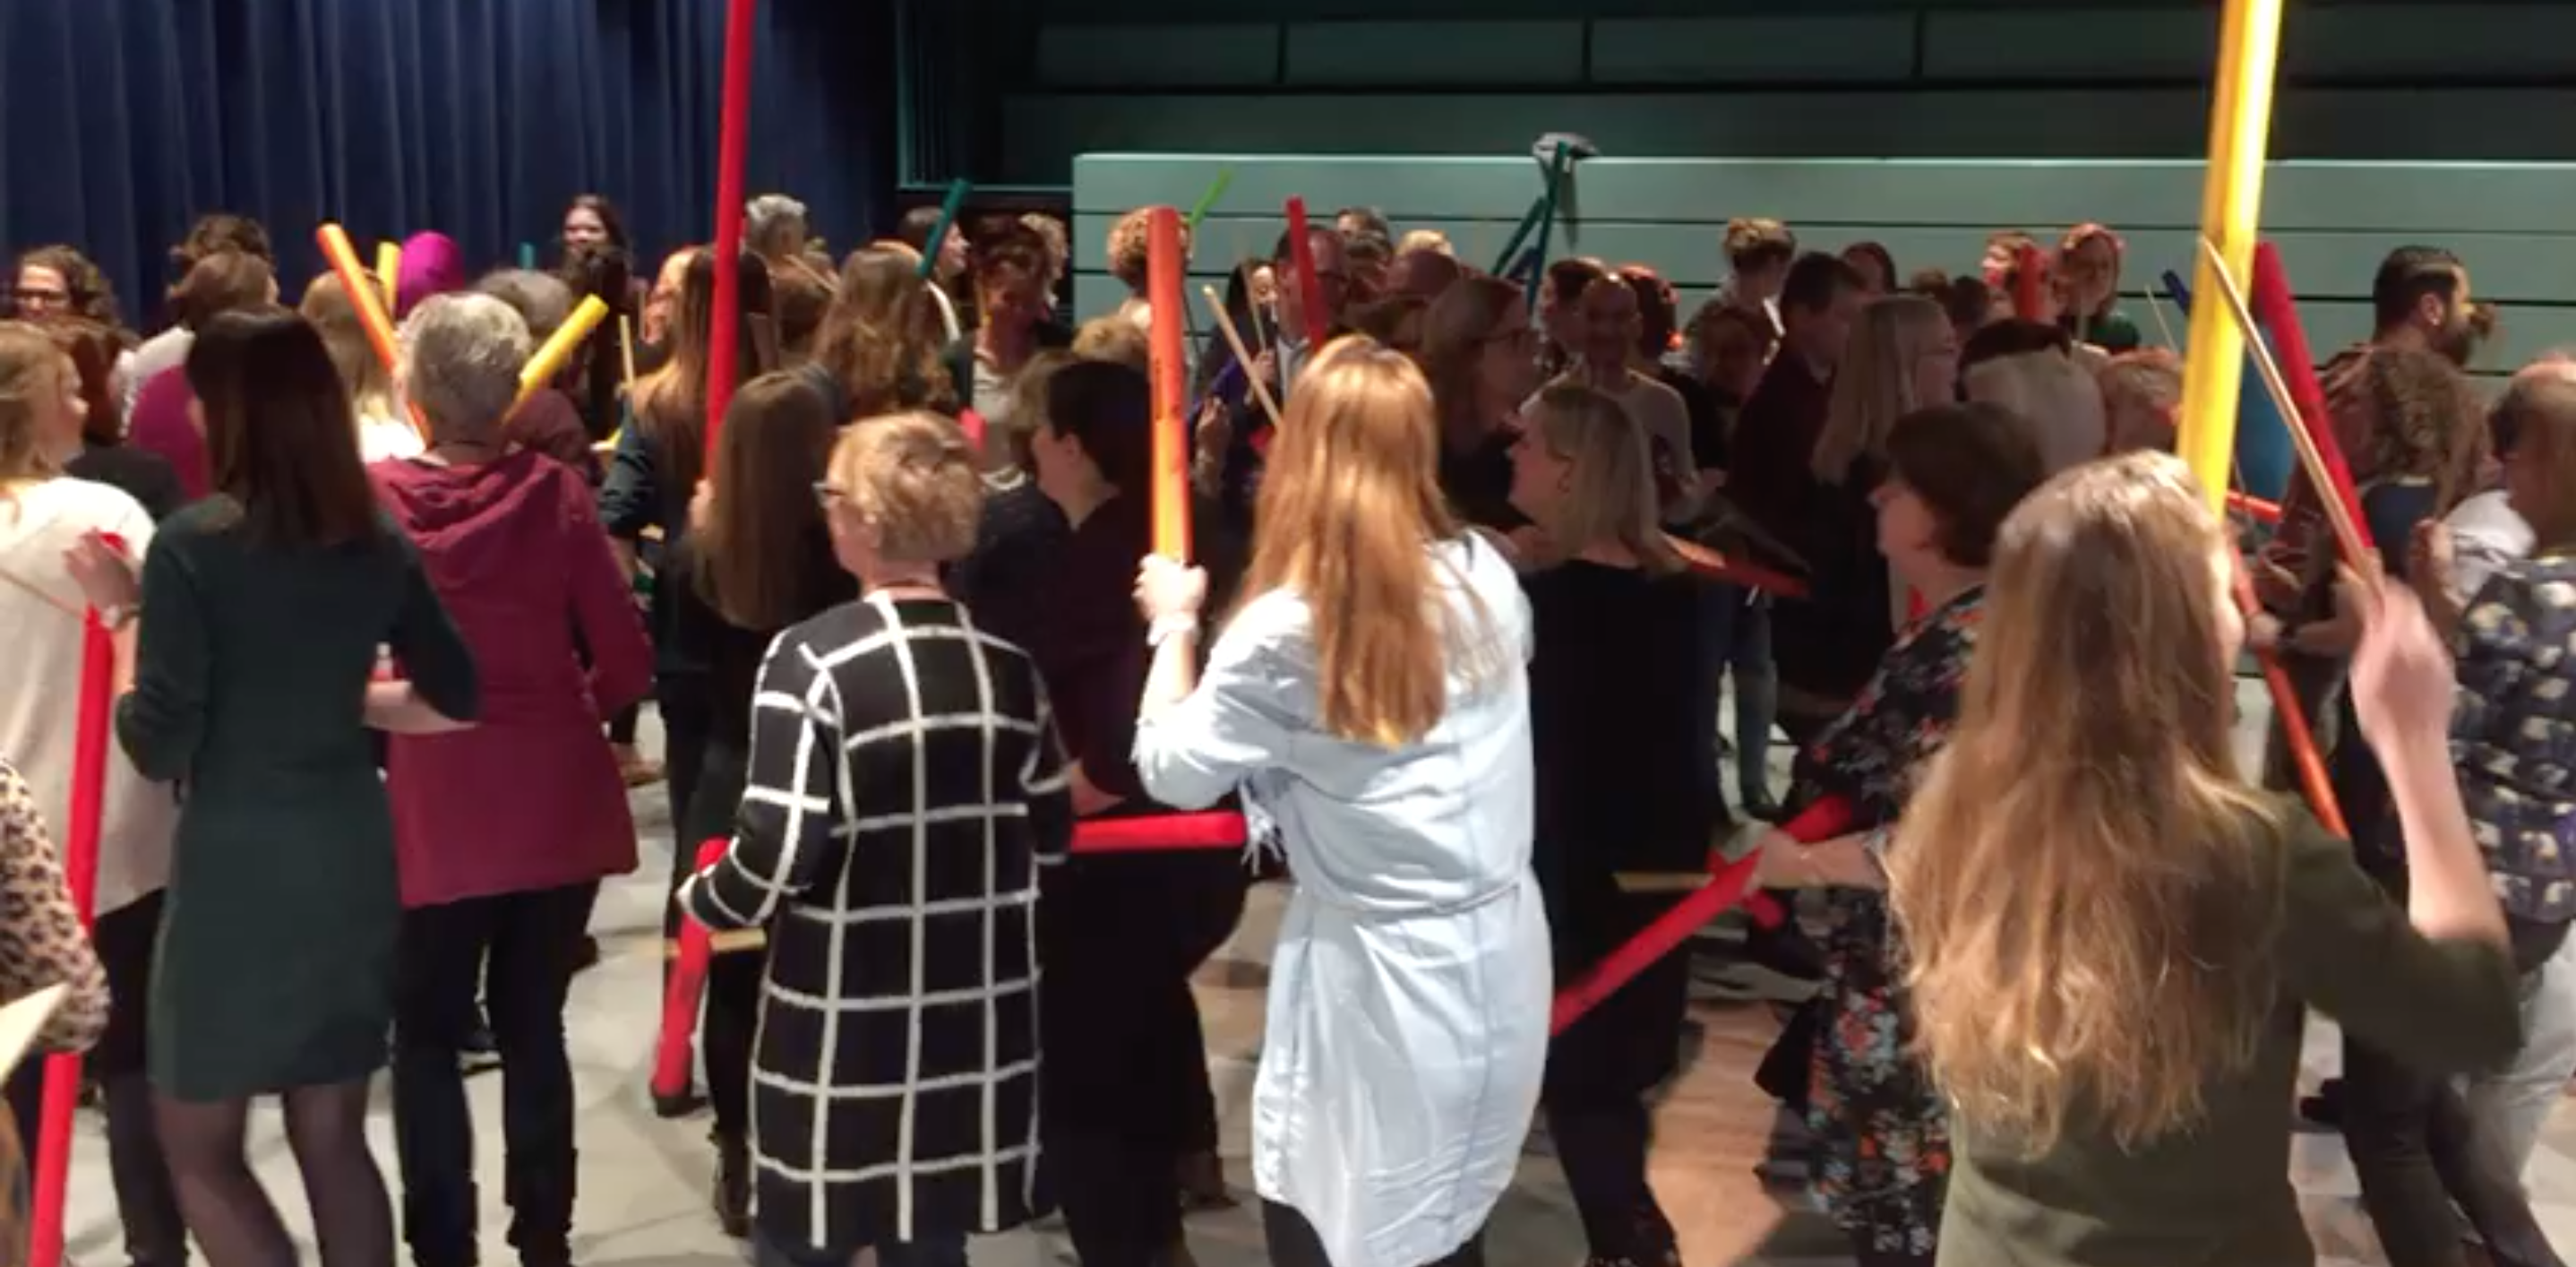 boomwhackers, percussieworkshop